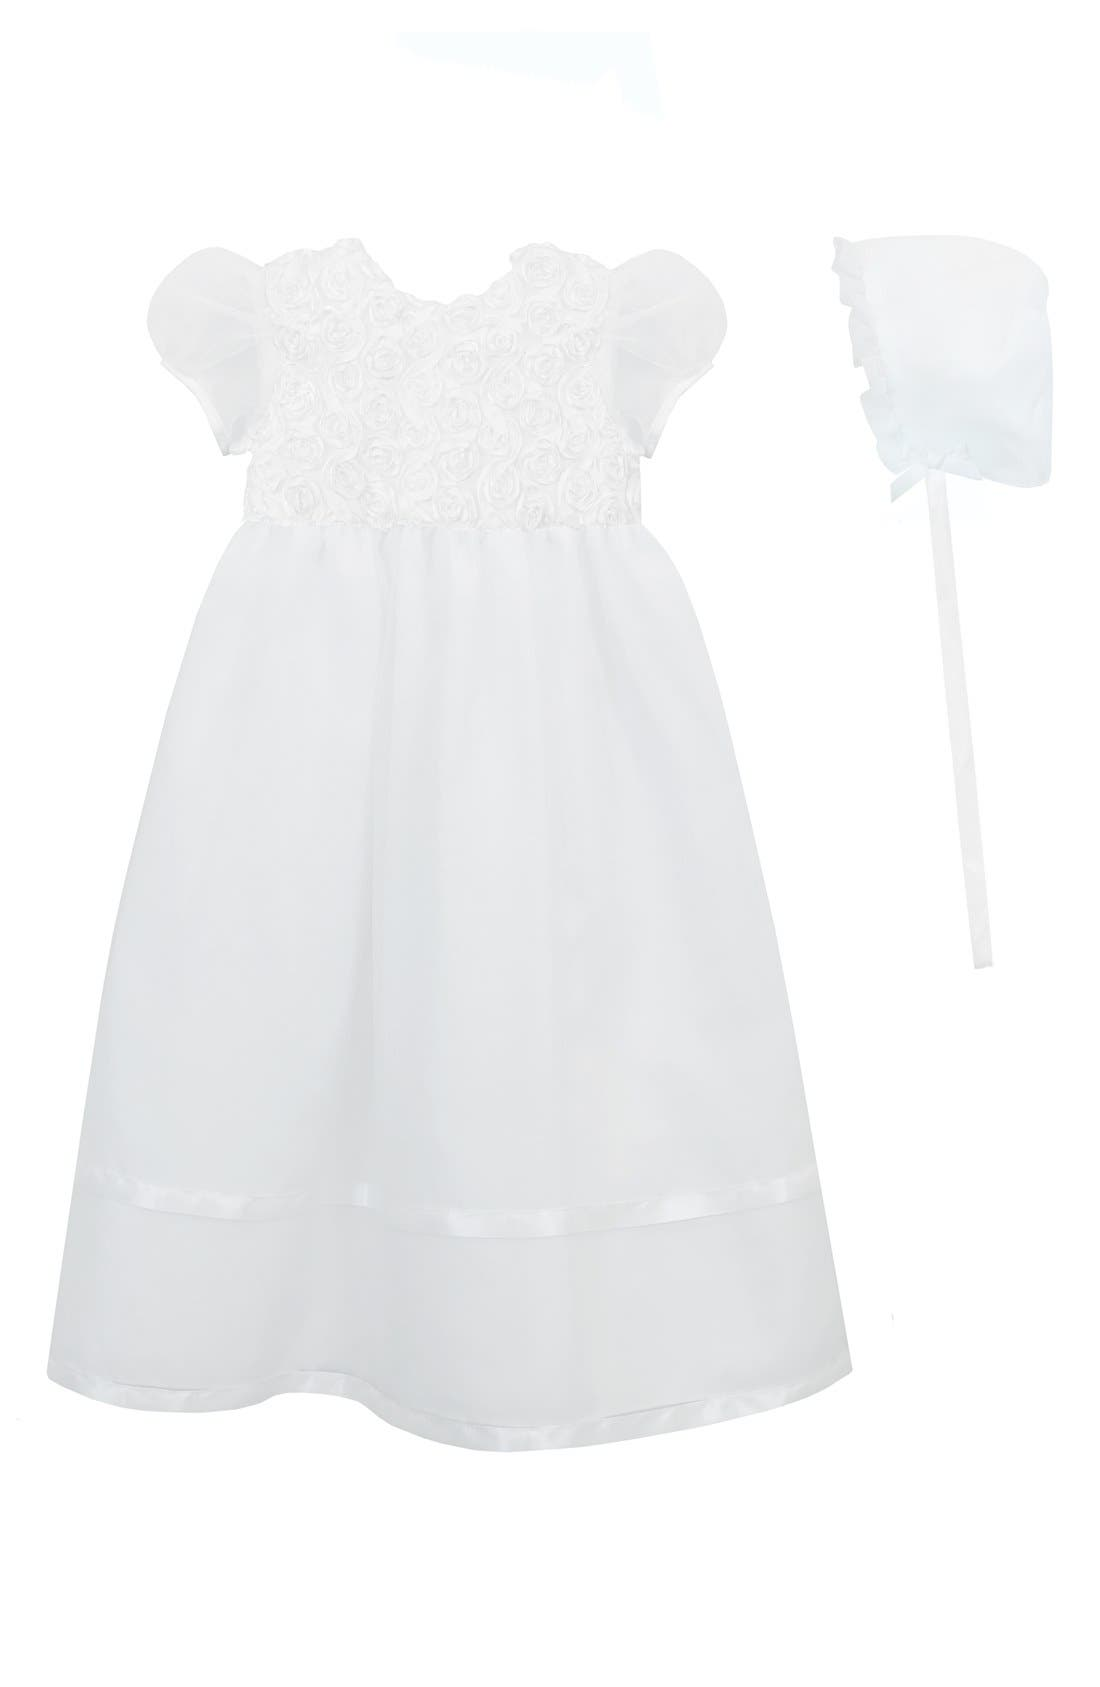 C.I. CASTRO & CO. Christening Gown & Bonnet